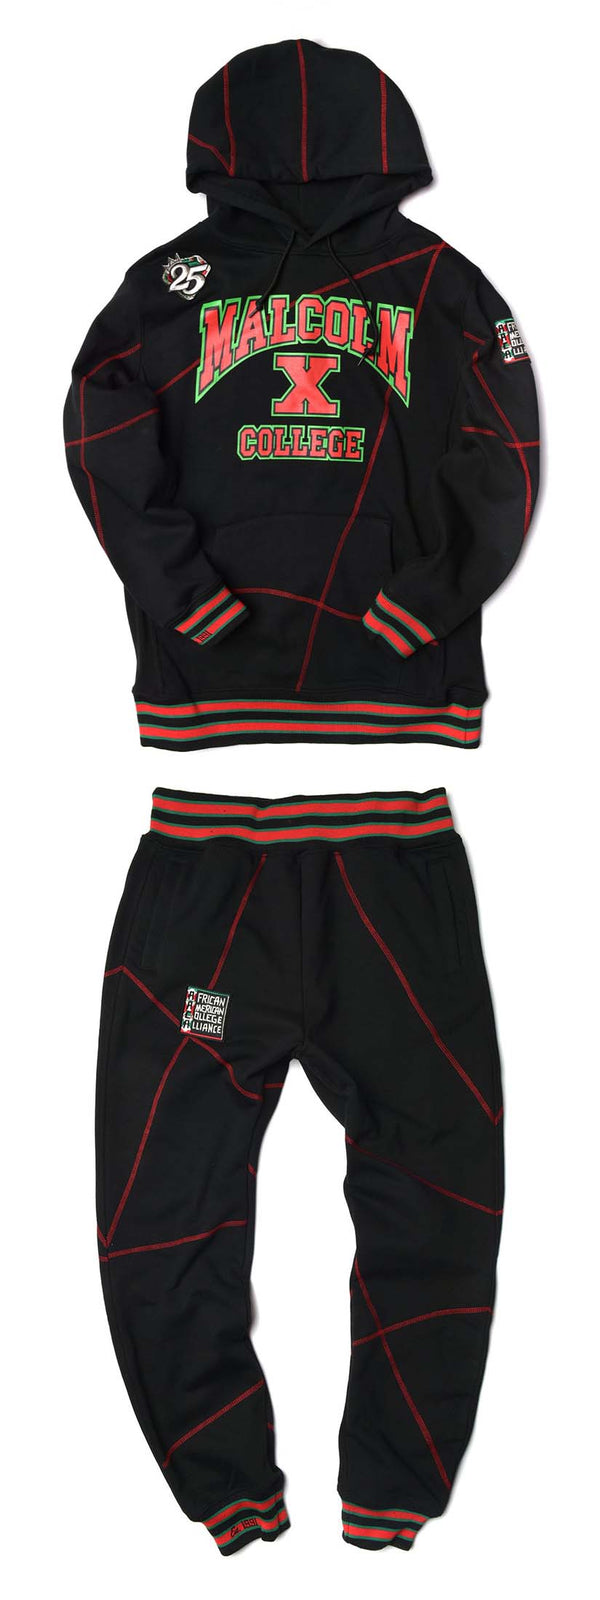 Malcolm X College Frankenstein 92 Stitch Hoodie Sweat Suit Black/ Red